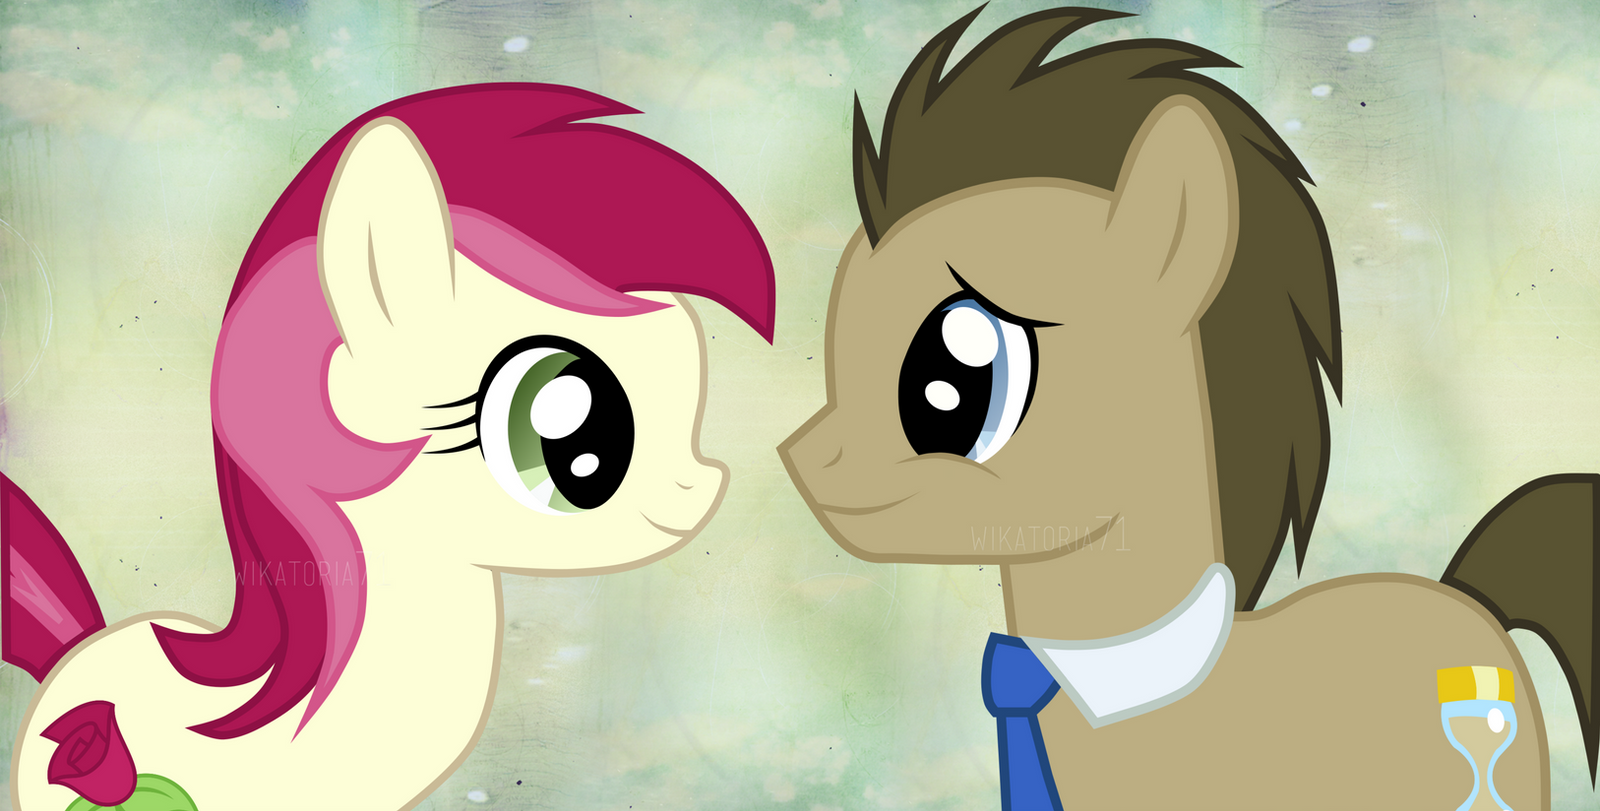 Doctor Whooves And Roseluck By Wikatoria71 On DeviantArt